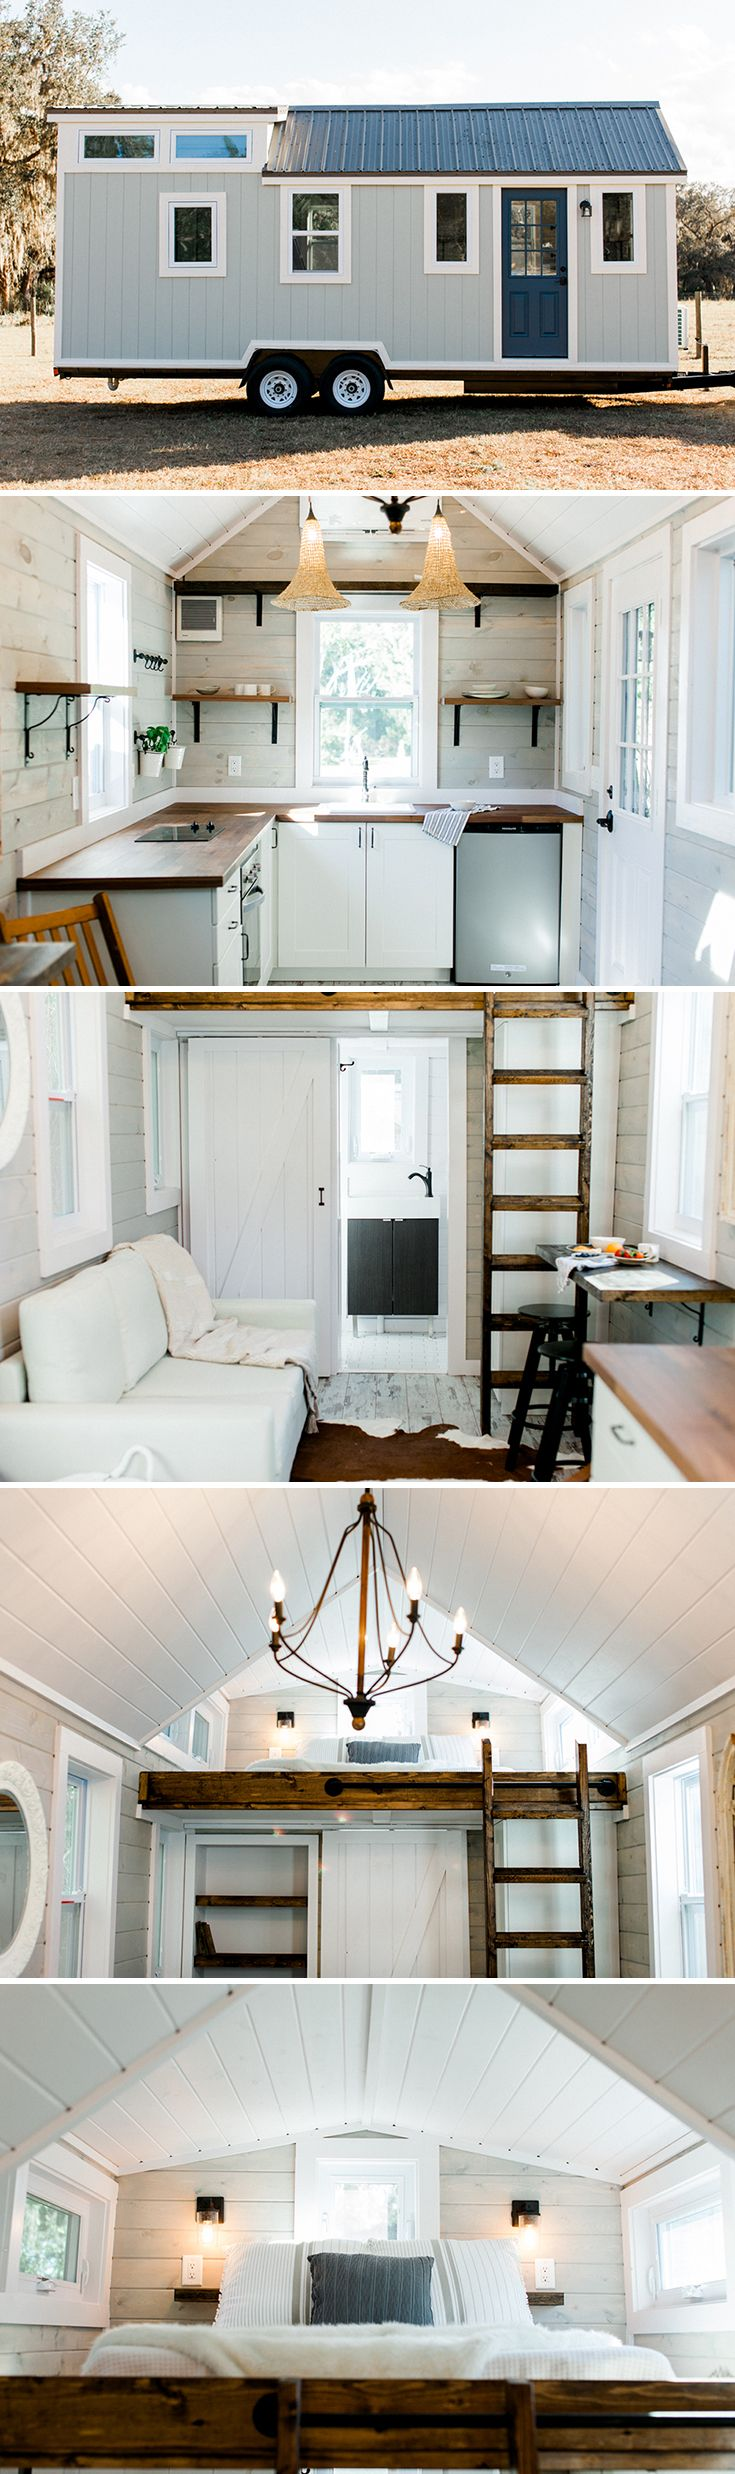 My House Interiors tiny martasanctuary tiny homes | cleaning, interiors and tiny